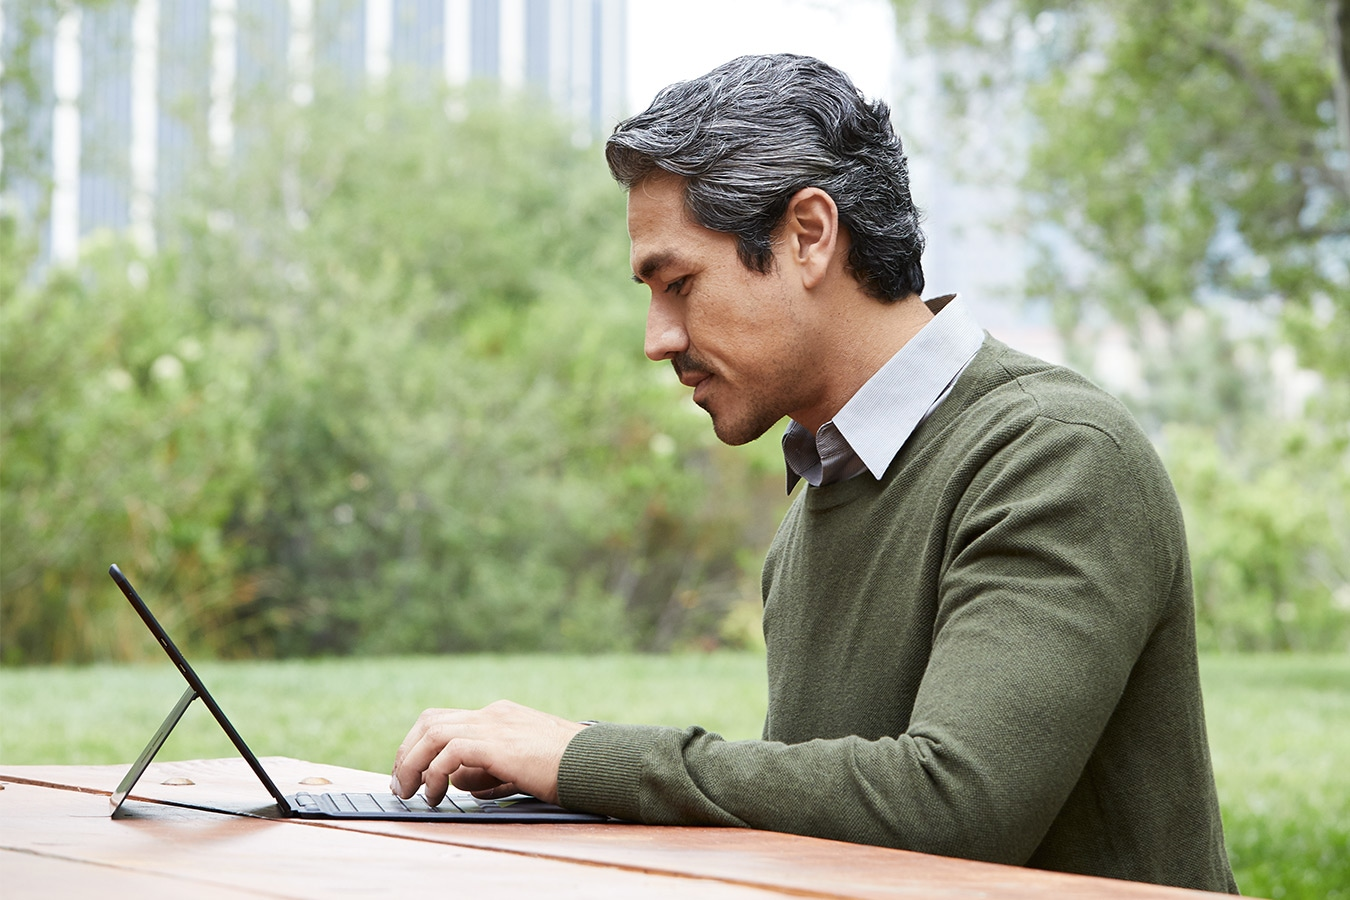 A person works on Surface Pro X while sitting outside